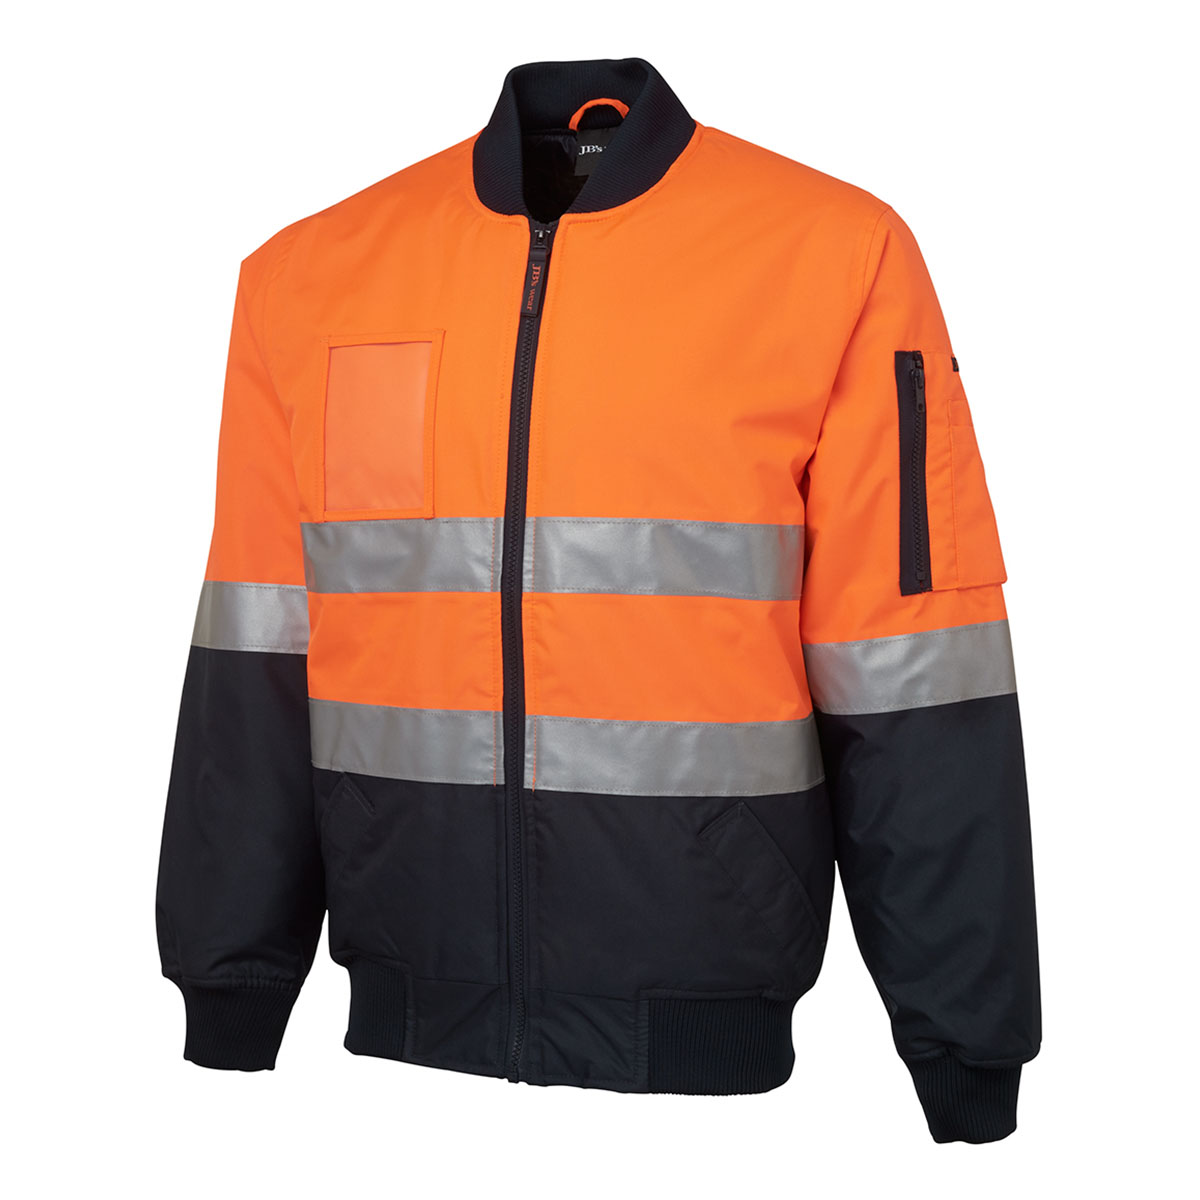 Branded Hi Vis Jacket